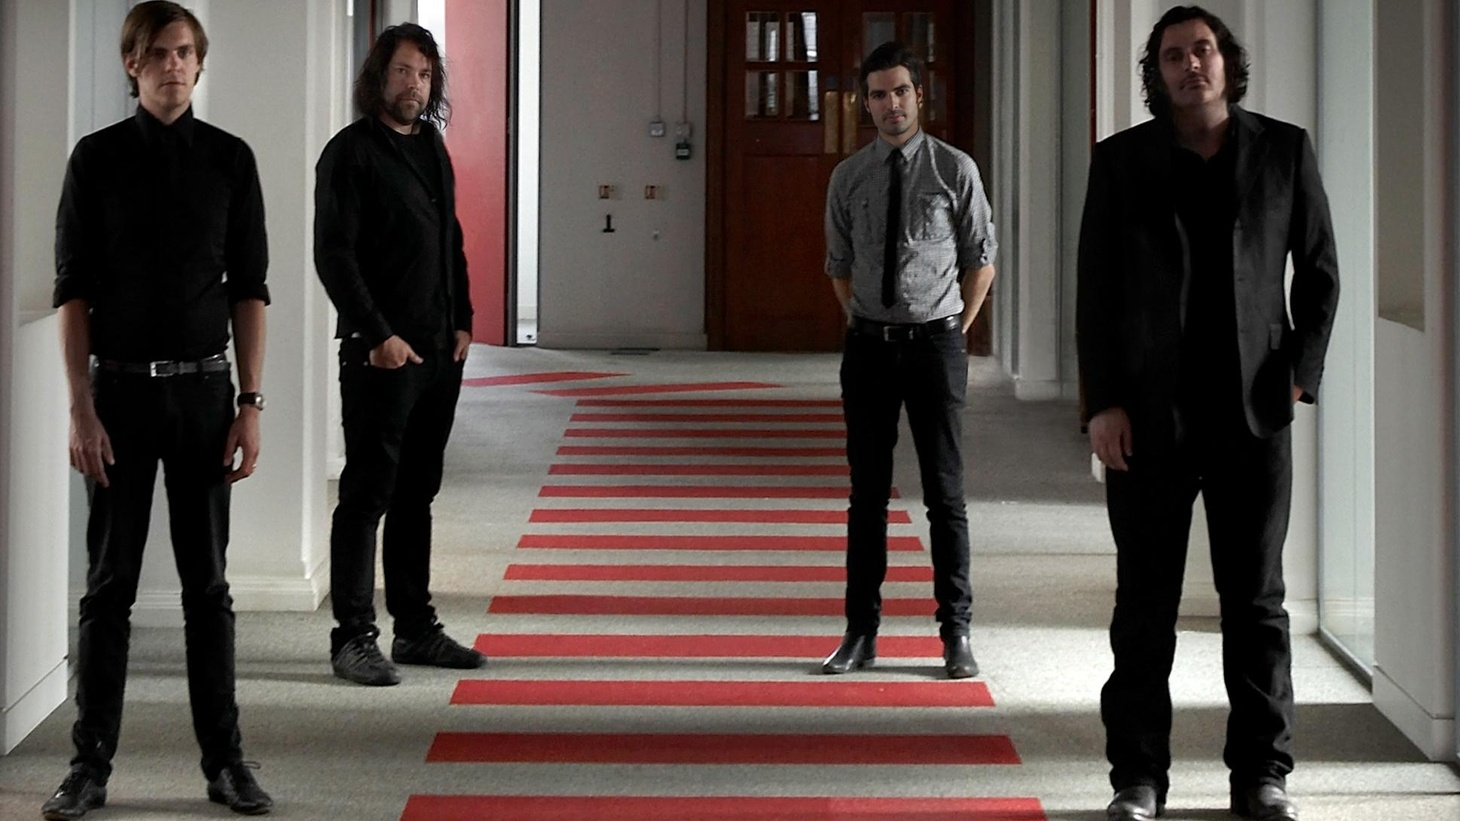 """2010 was a banner year for The Boxer Rebellion, who had a notable appearance in the Drew Barrymore film Going the Distance and recorded their new album, The Cold Still, at Peter Gabriel's Real World Studios with producer Ethan Johns (Kings of Leon, Ray LaMontagne). You can hear the results on Today's Top Tune, """"No Harm."""""""